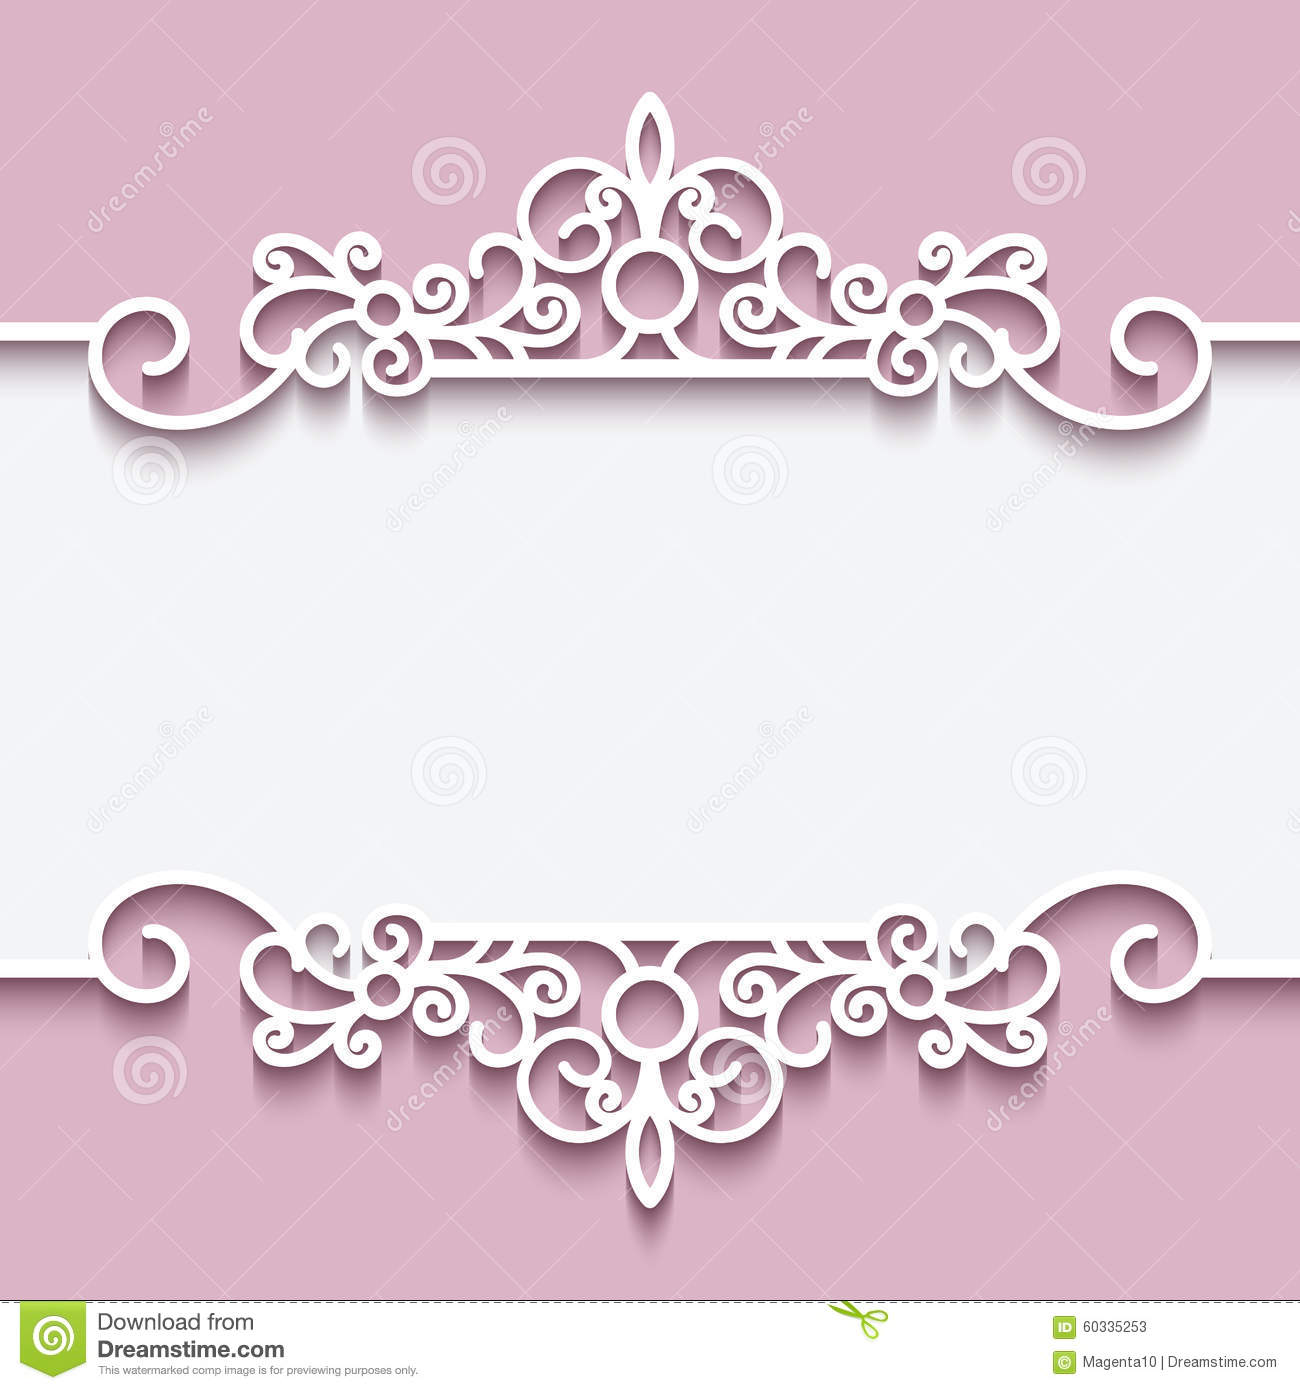 Invitation Card For Wedding Layout Cutout Paper Lace Frame Stock Vector - Image: 60335253